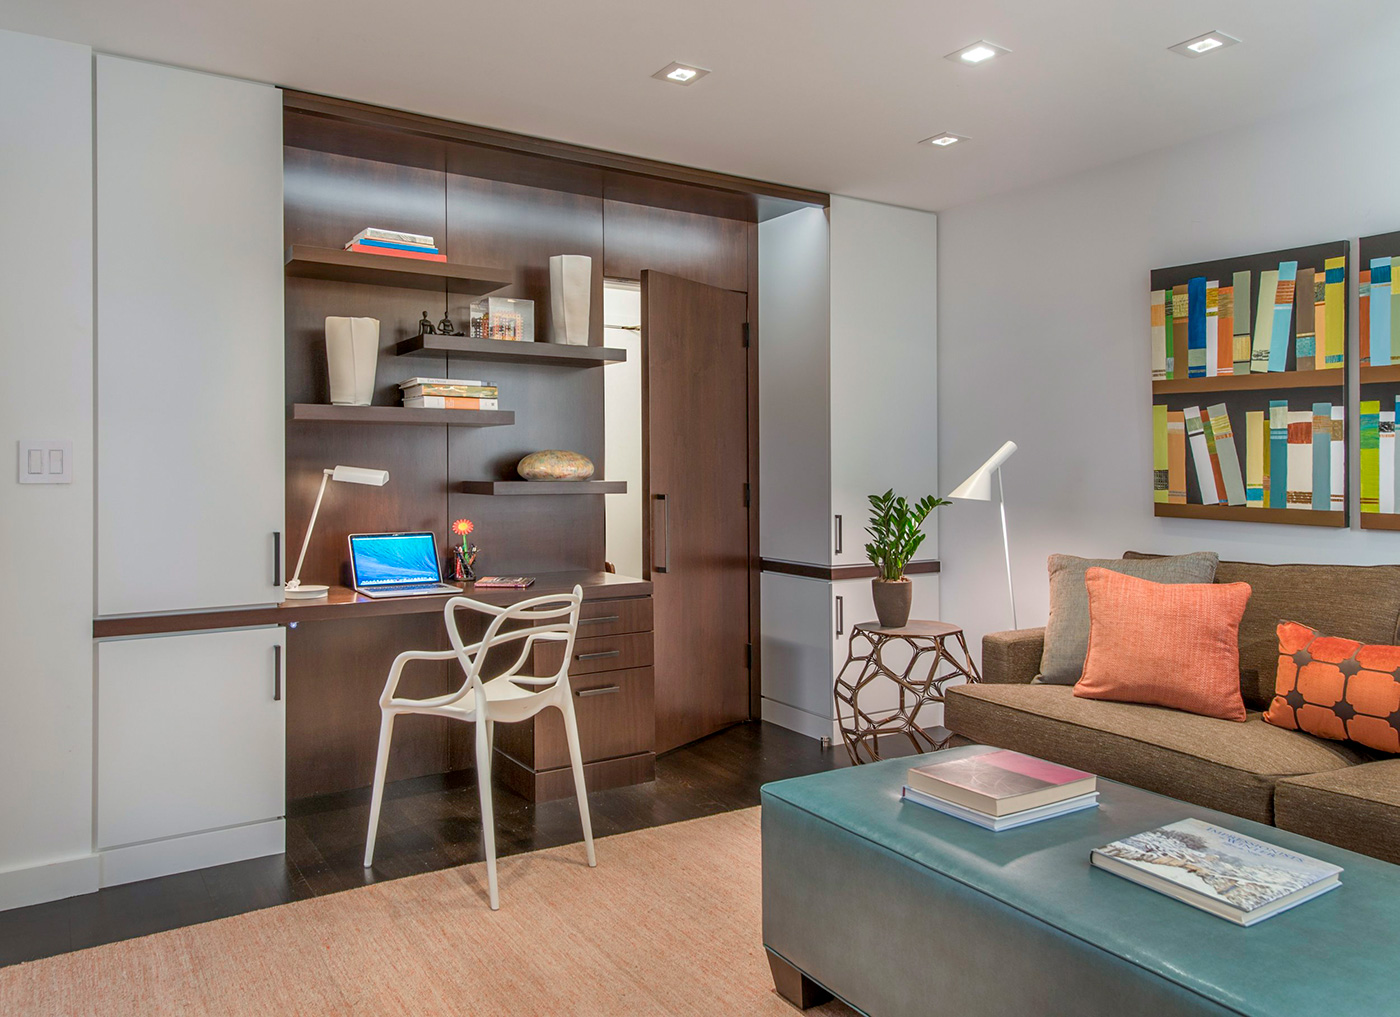 Home office design carved right into the wall by Adams + Beasley Associates